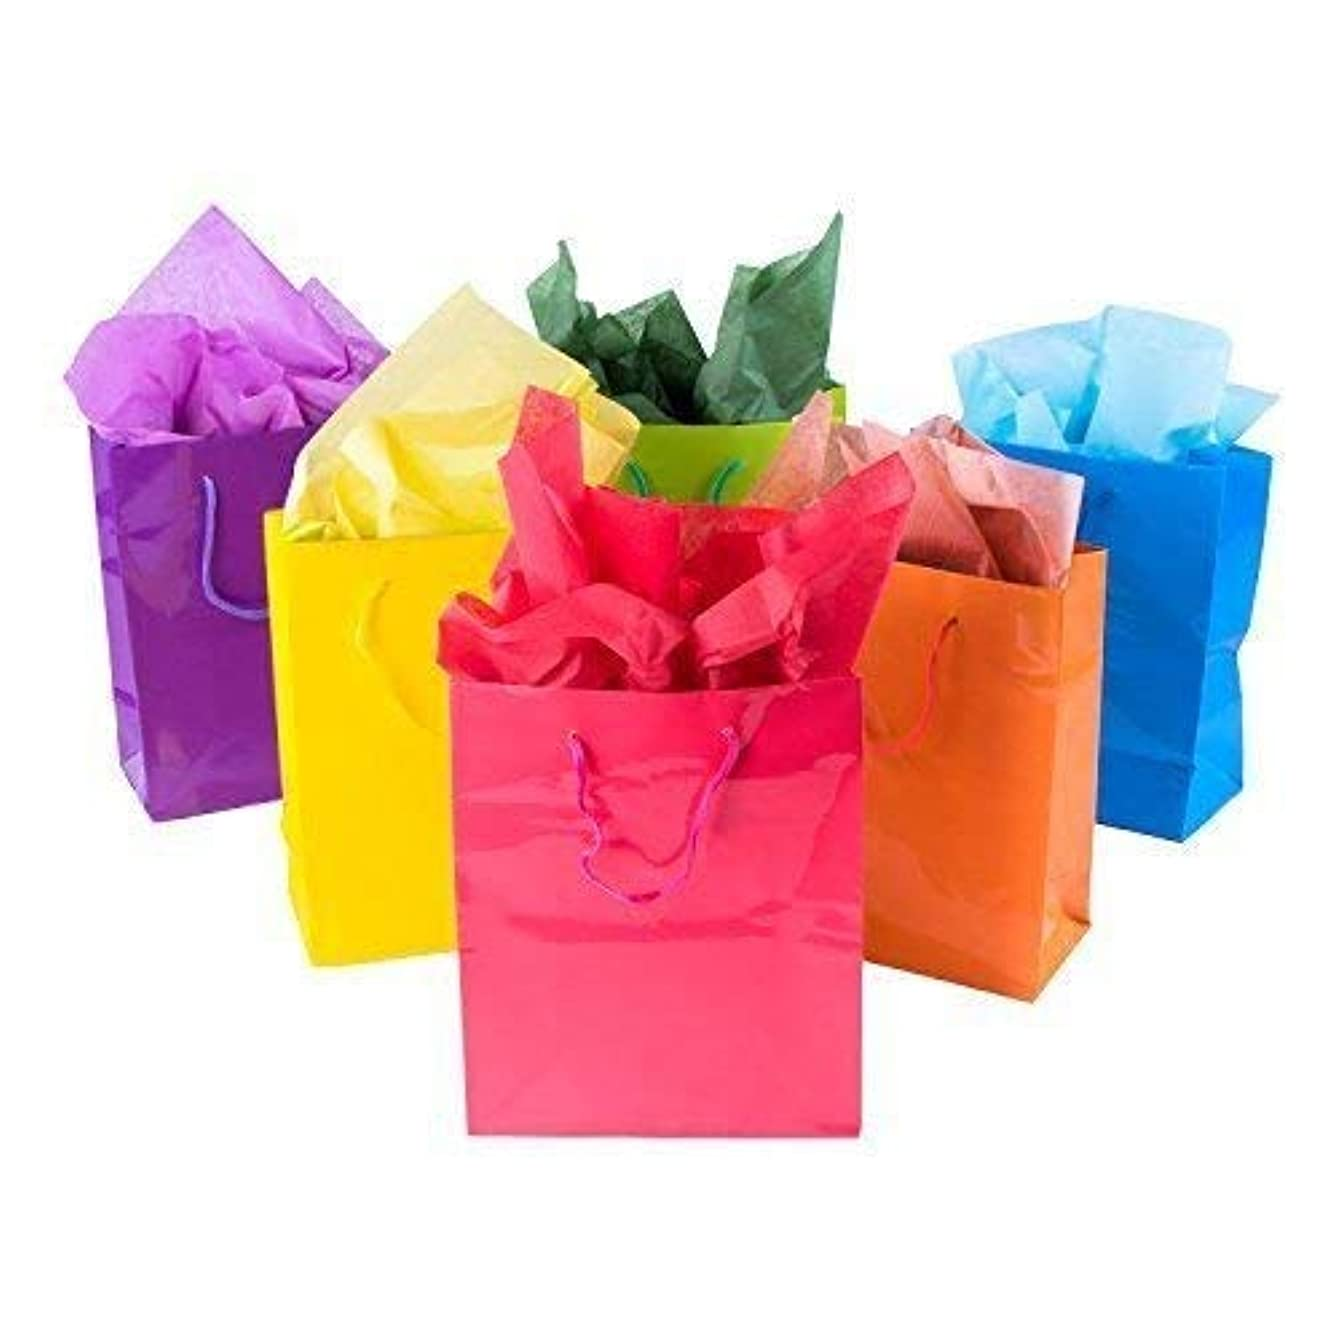 Tytroy Set of 12 Small Multi Color Glossy Gift Bags with Handles Paper Gift Bags for Birthday Parties All Occasions f406590233056222